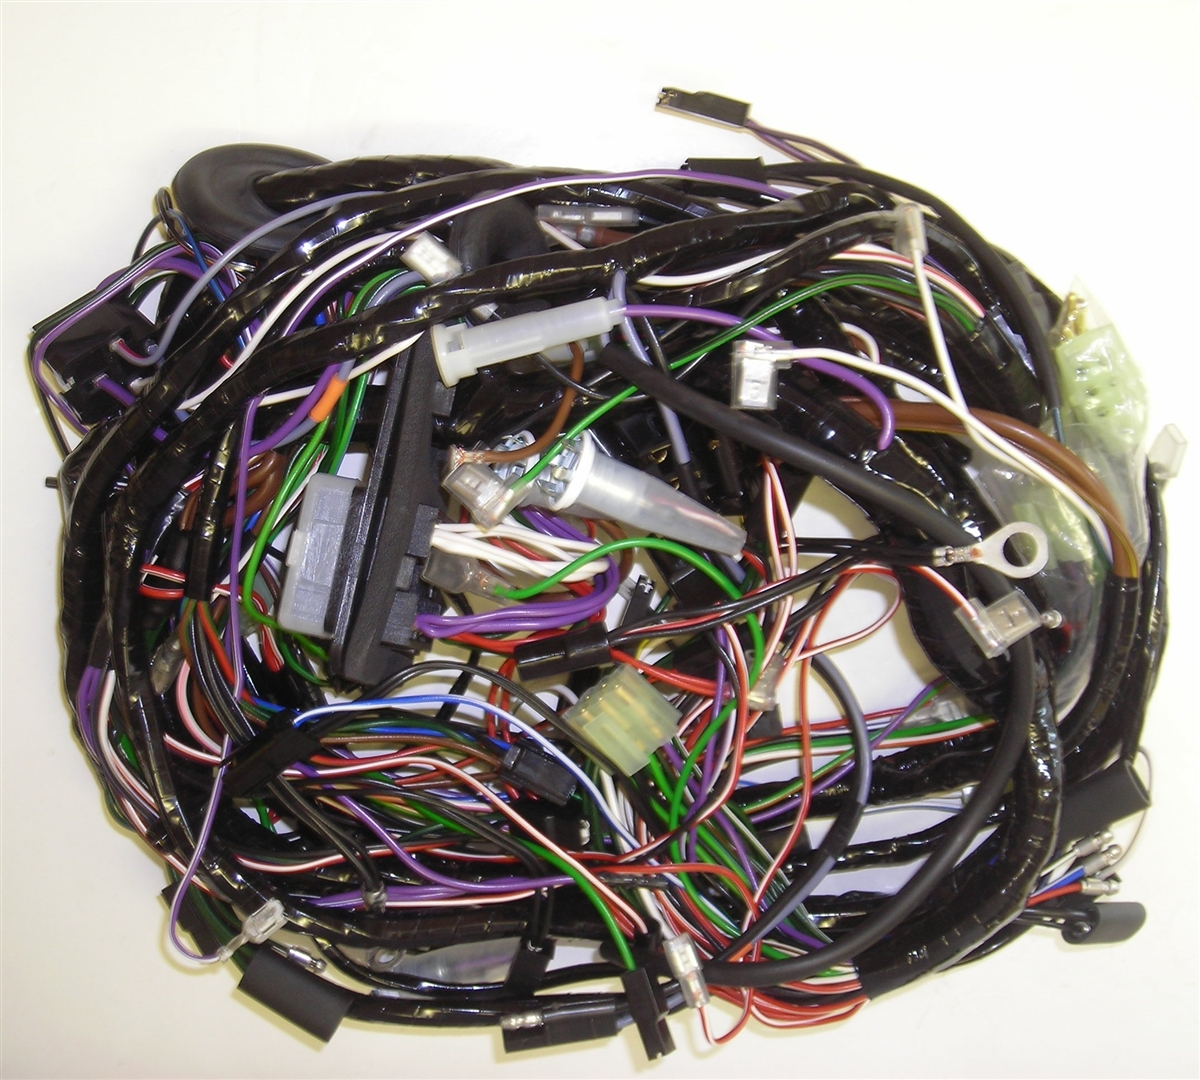 1531(3) 2?1443618008 spitfire1500 main wiring harness 73 triumph spitfire 1500 wiring harness at aneh.co